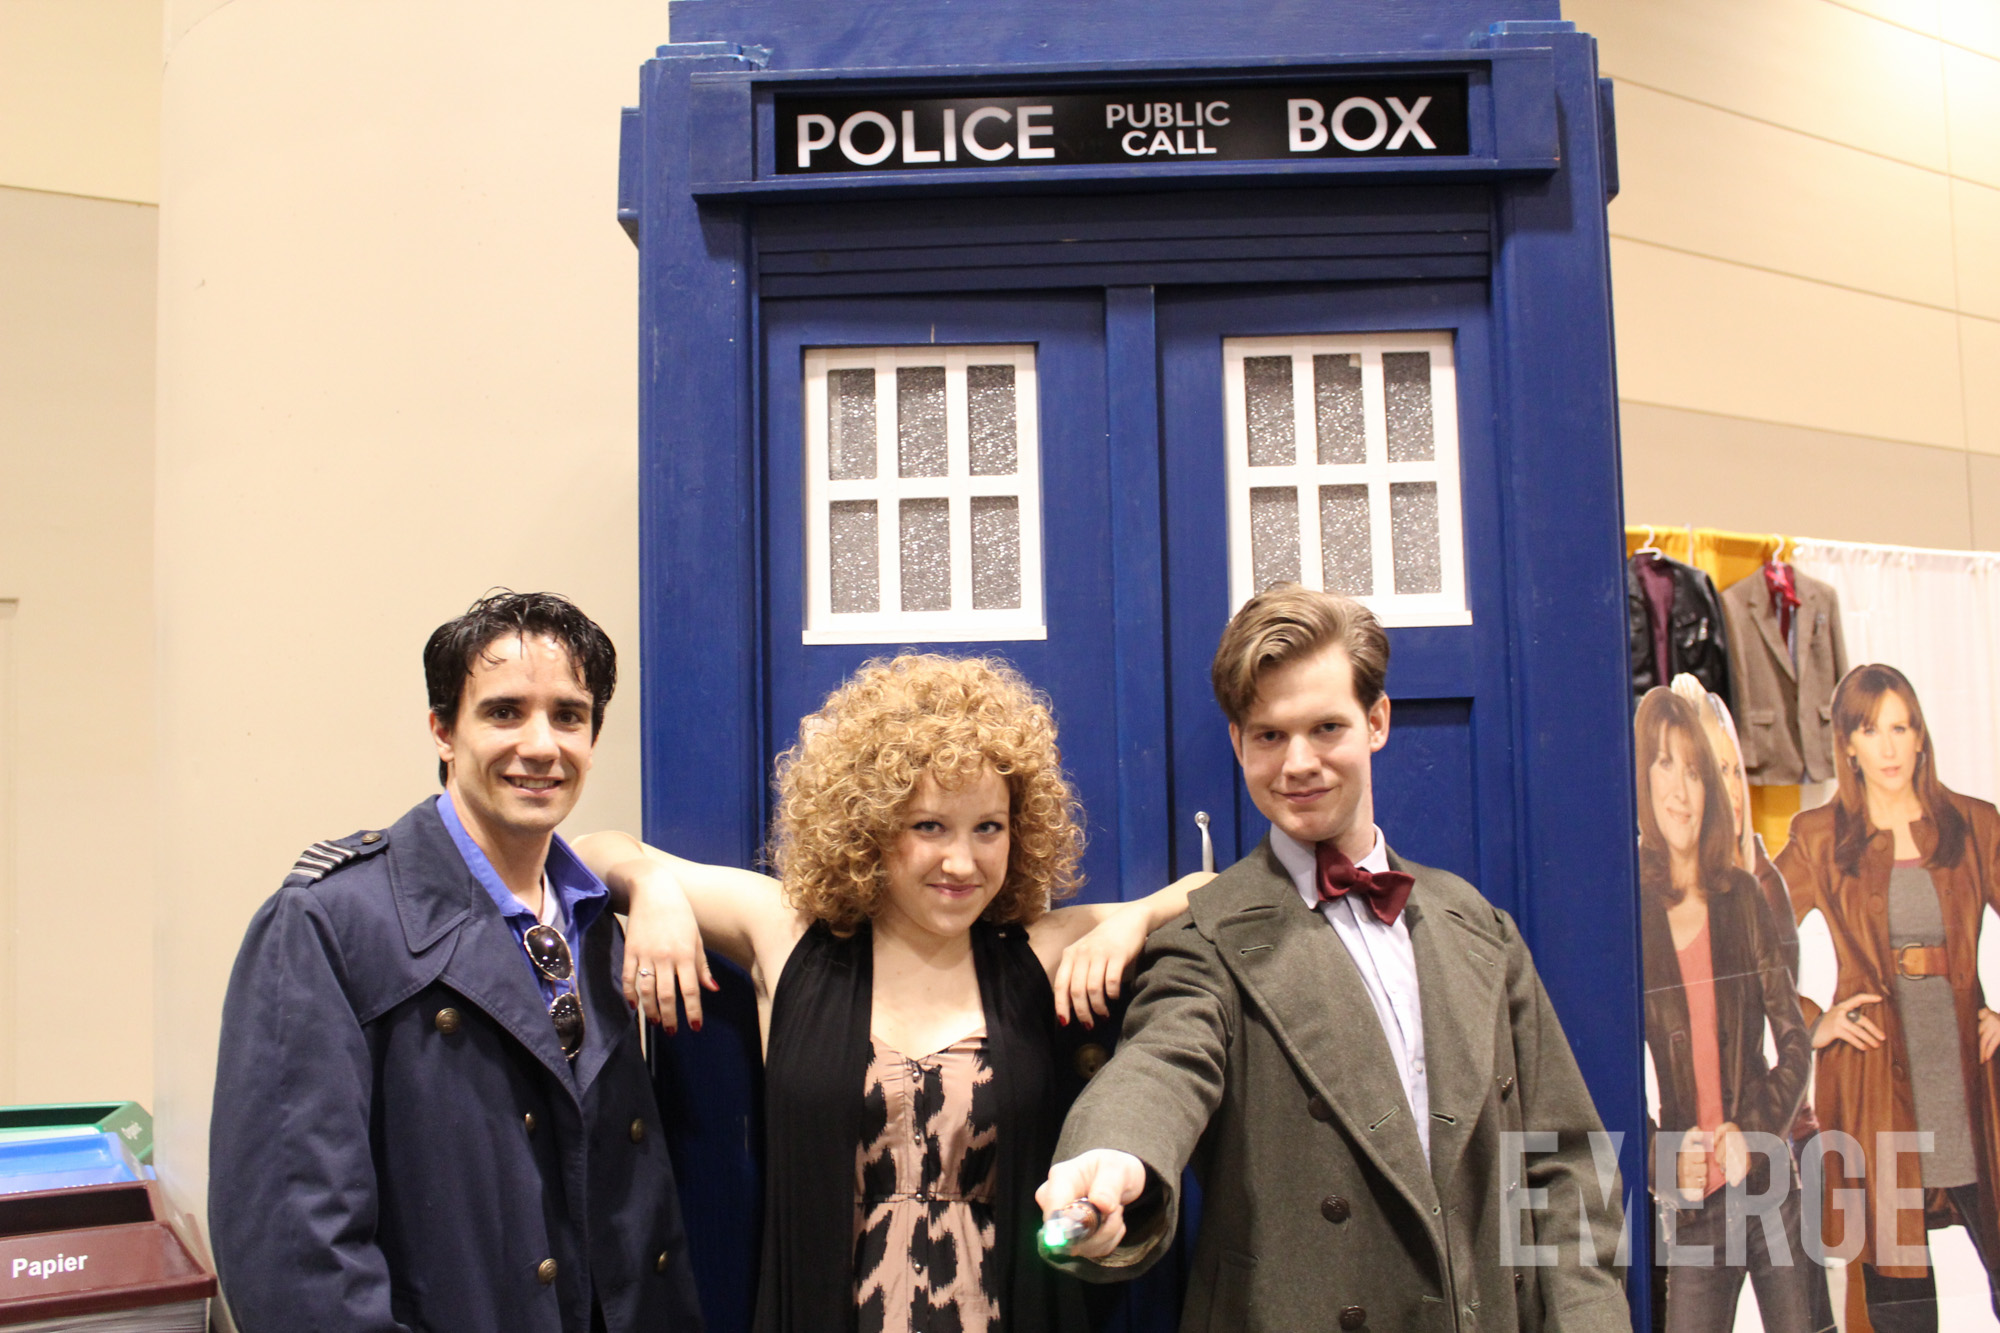 Reunited! Captain Jack Harkness, River Song, and the 11th Doctor pose in front of the TARDIS. Timey wimey!